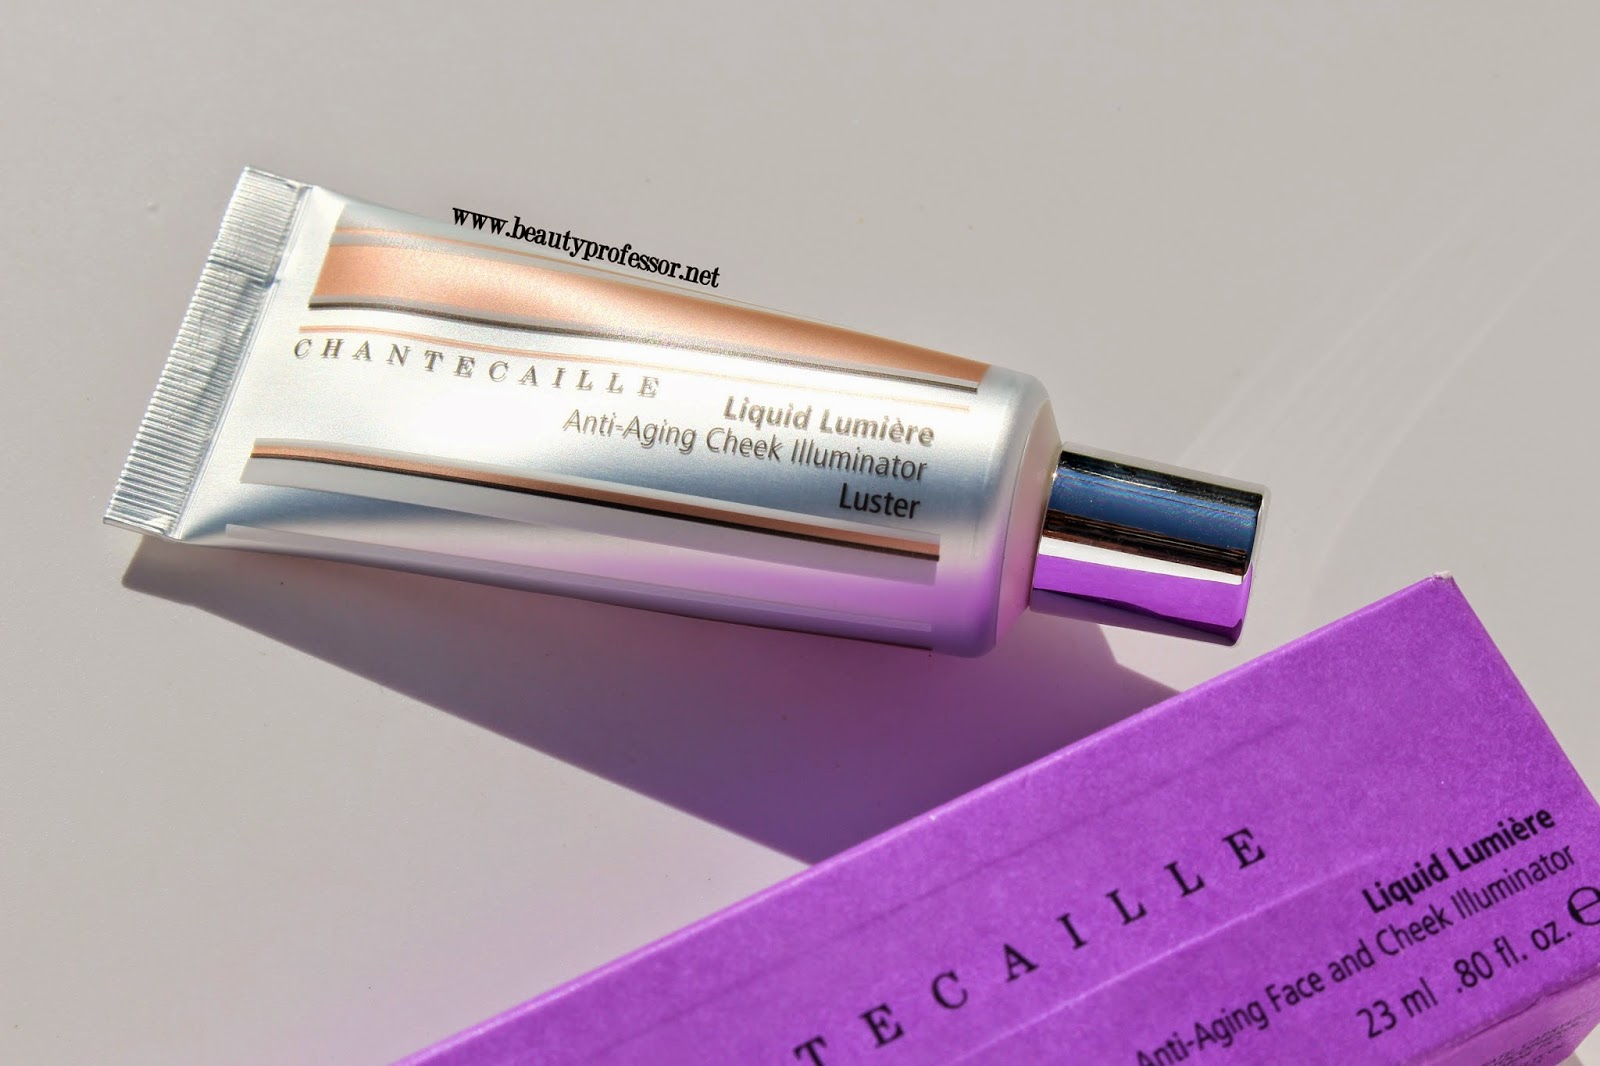 chantecaille liquid illuminator luster swatches